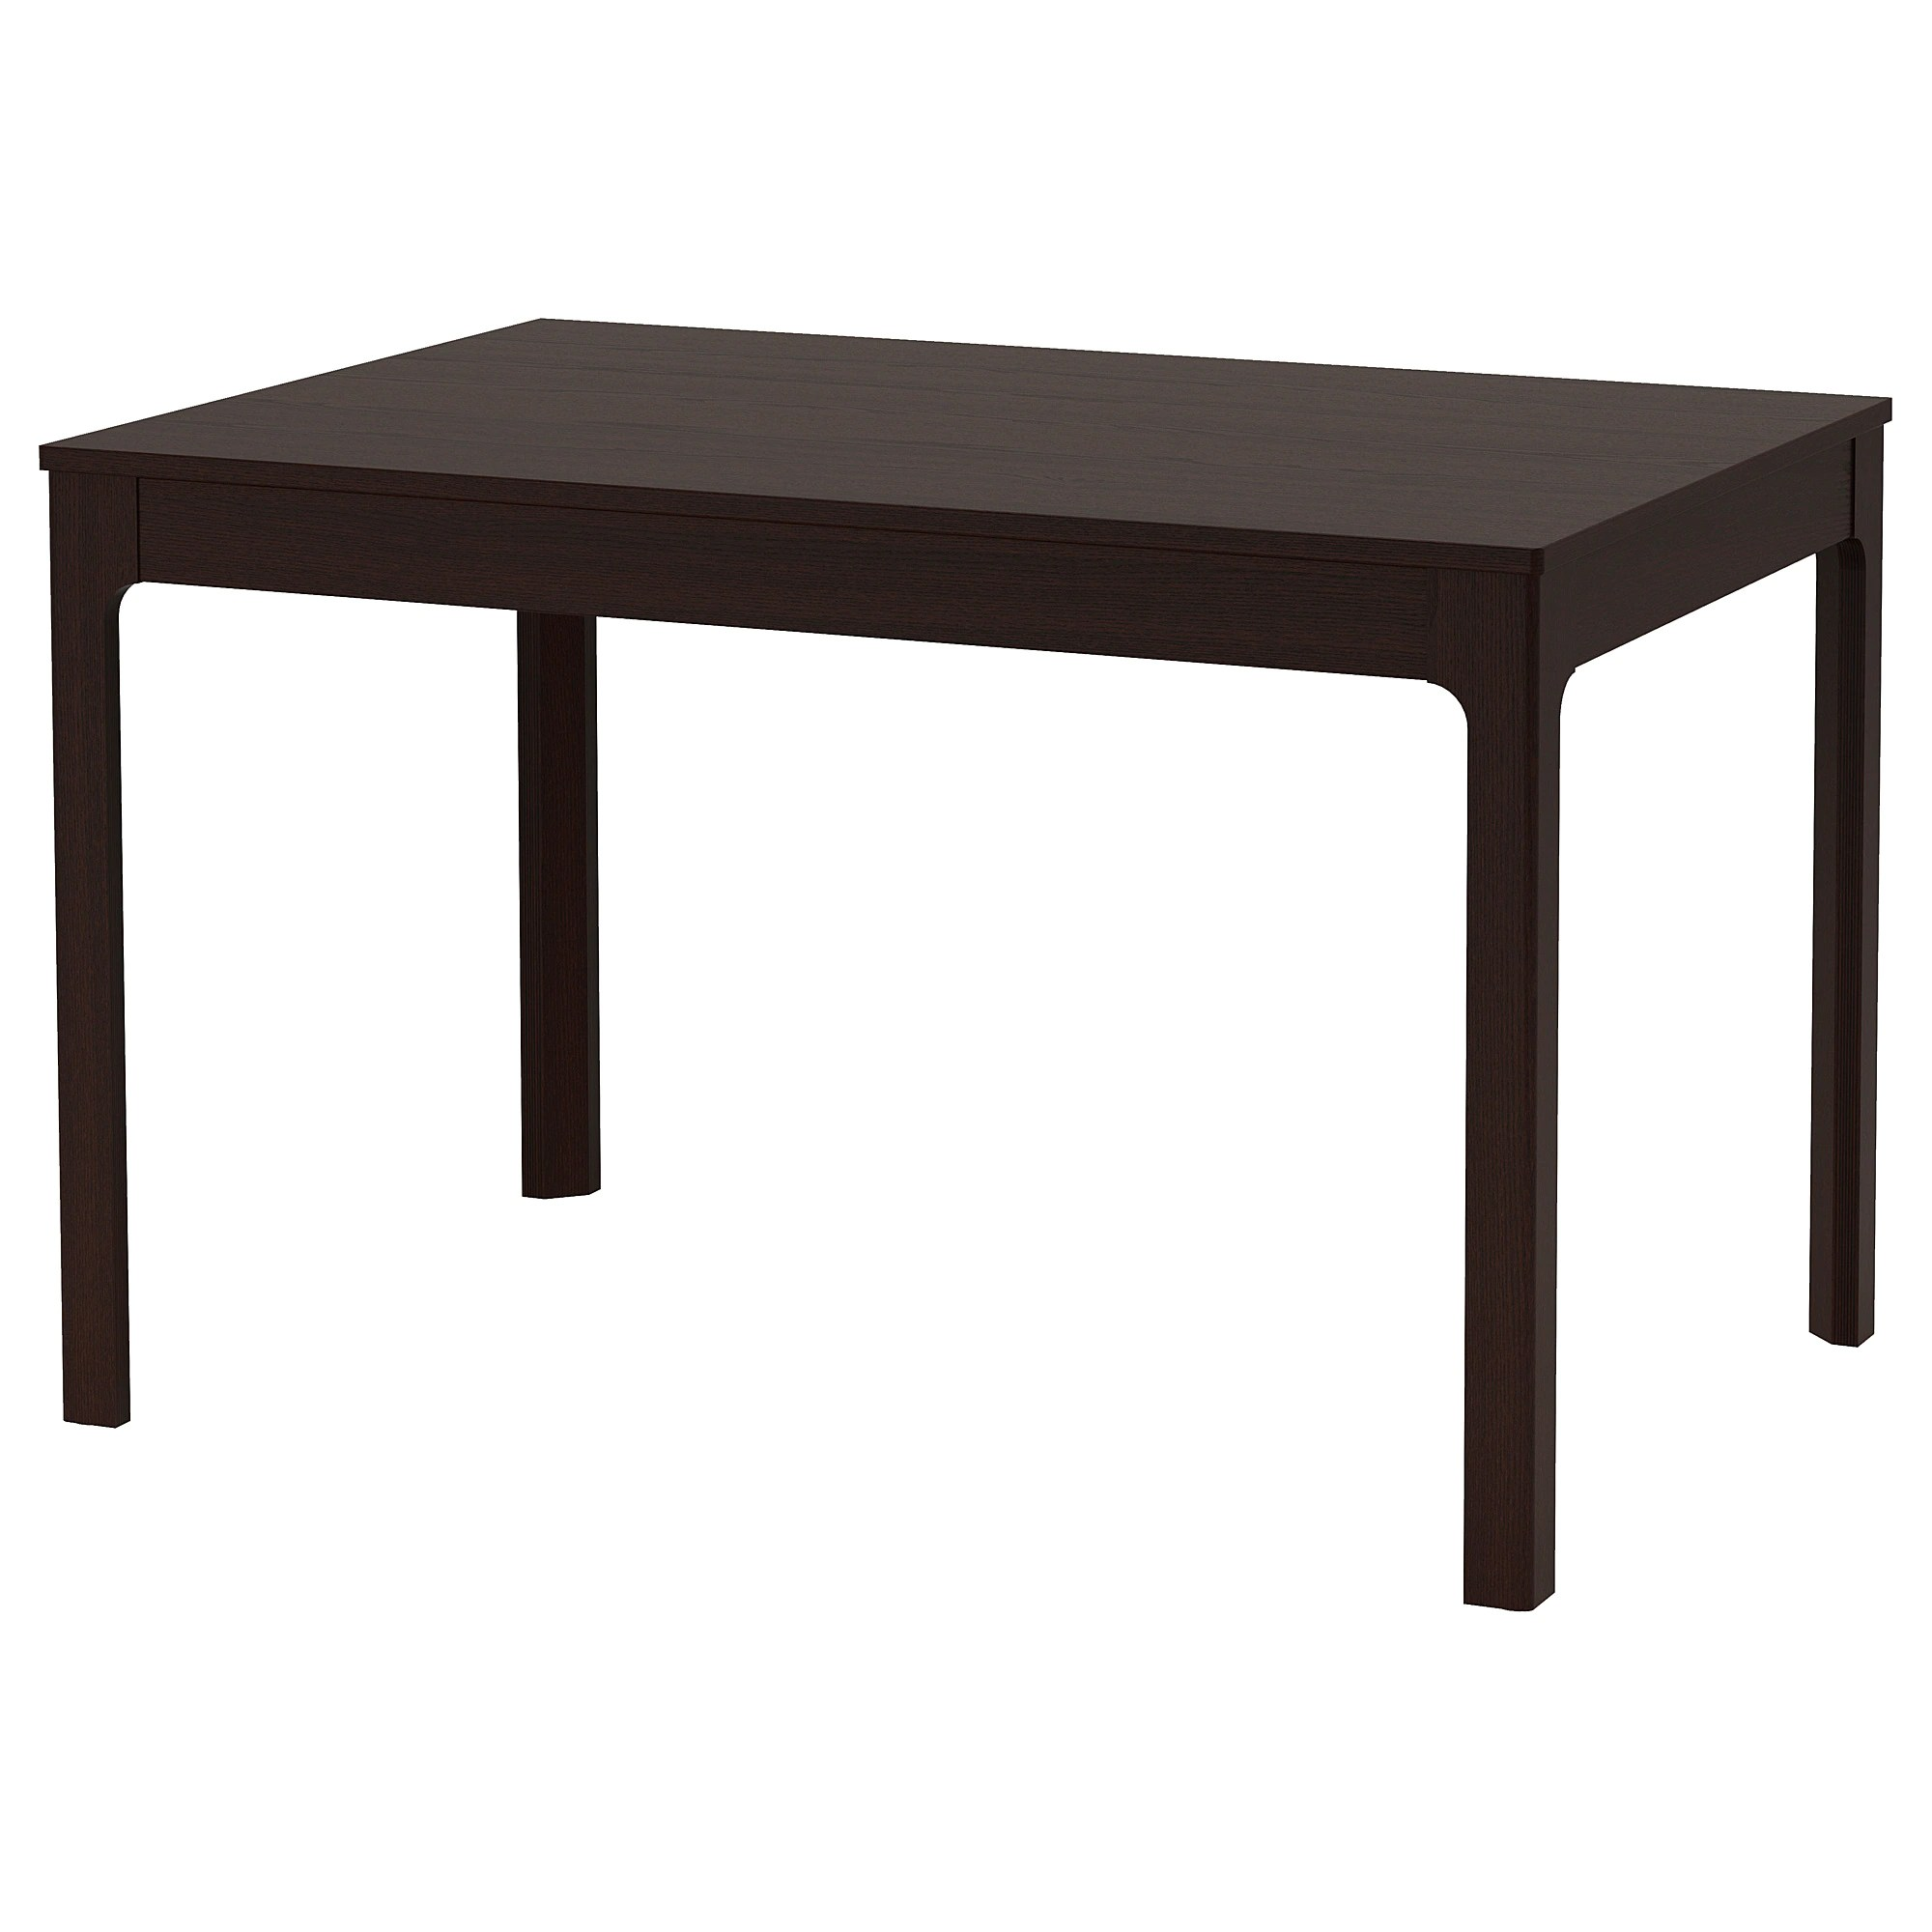 Ikea Table Ekedalen Extendable Table Dark Brown